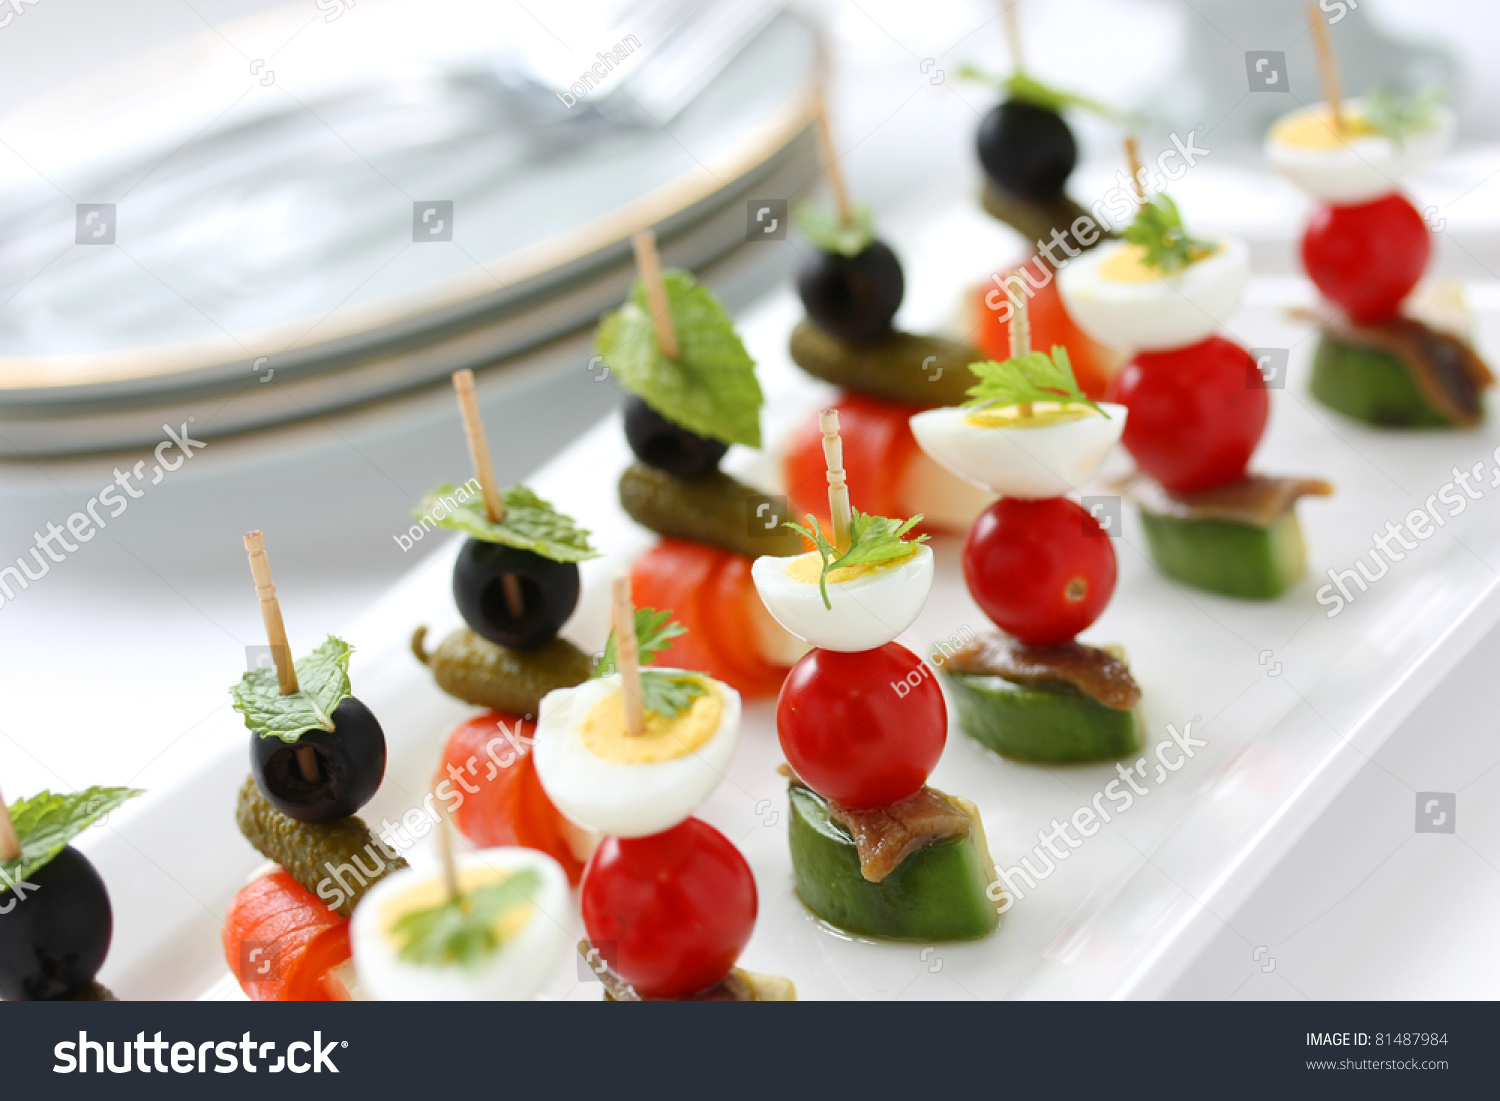 Canapes on toothpicks appetizer pinchos spanish stock for What is a canape appetizer